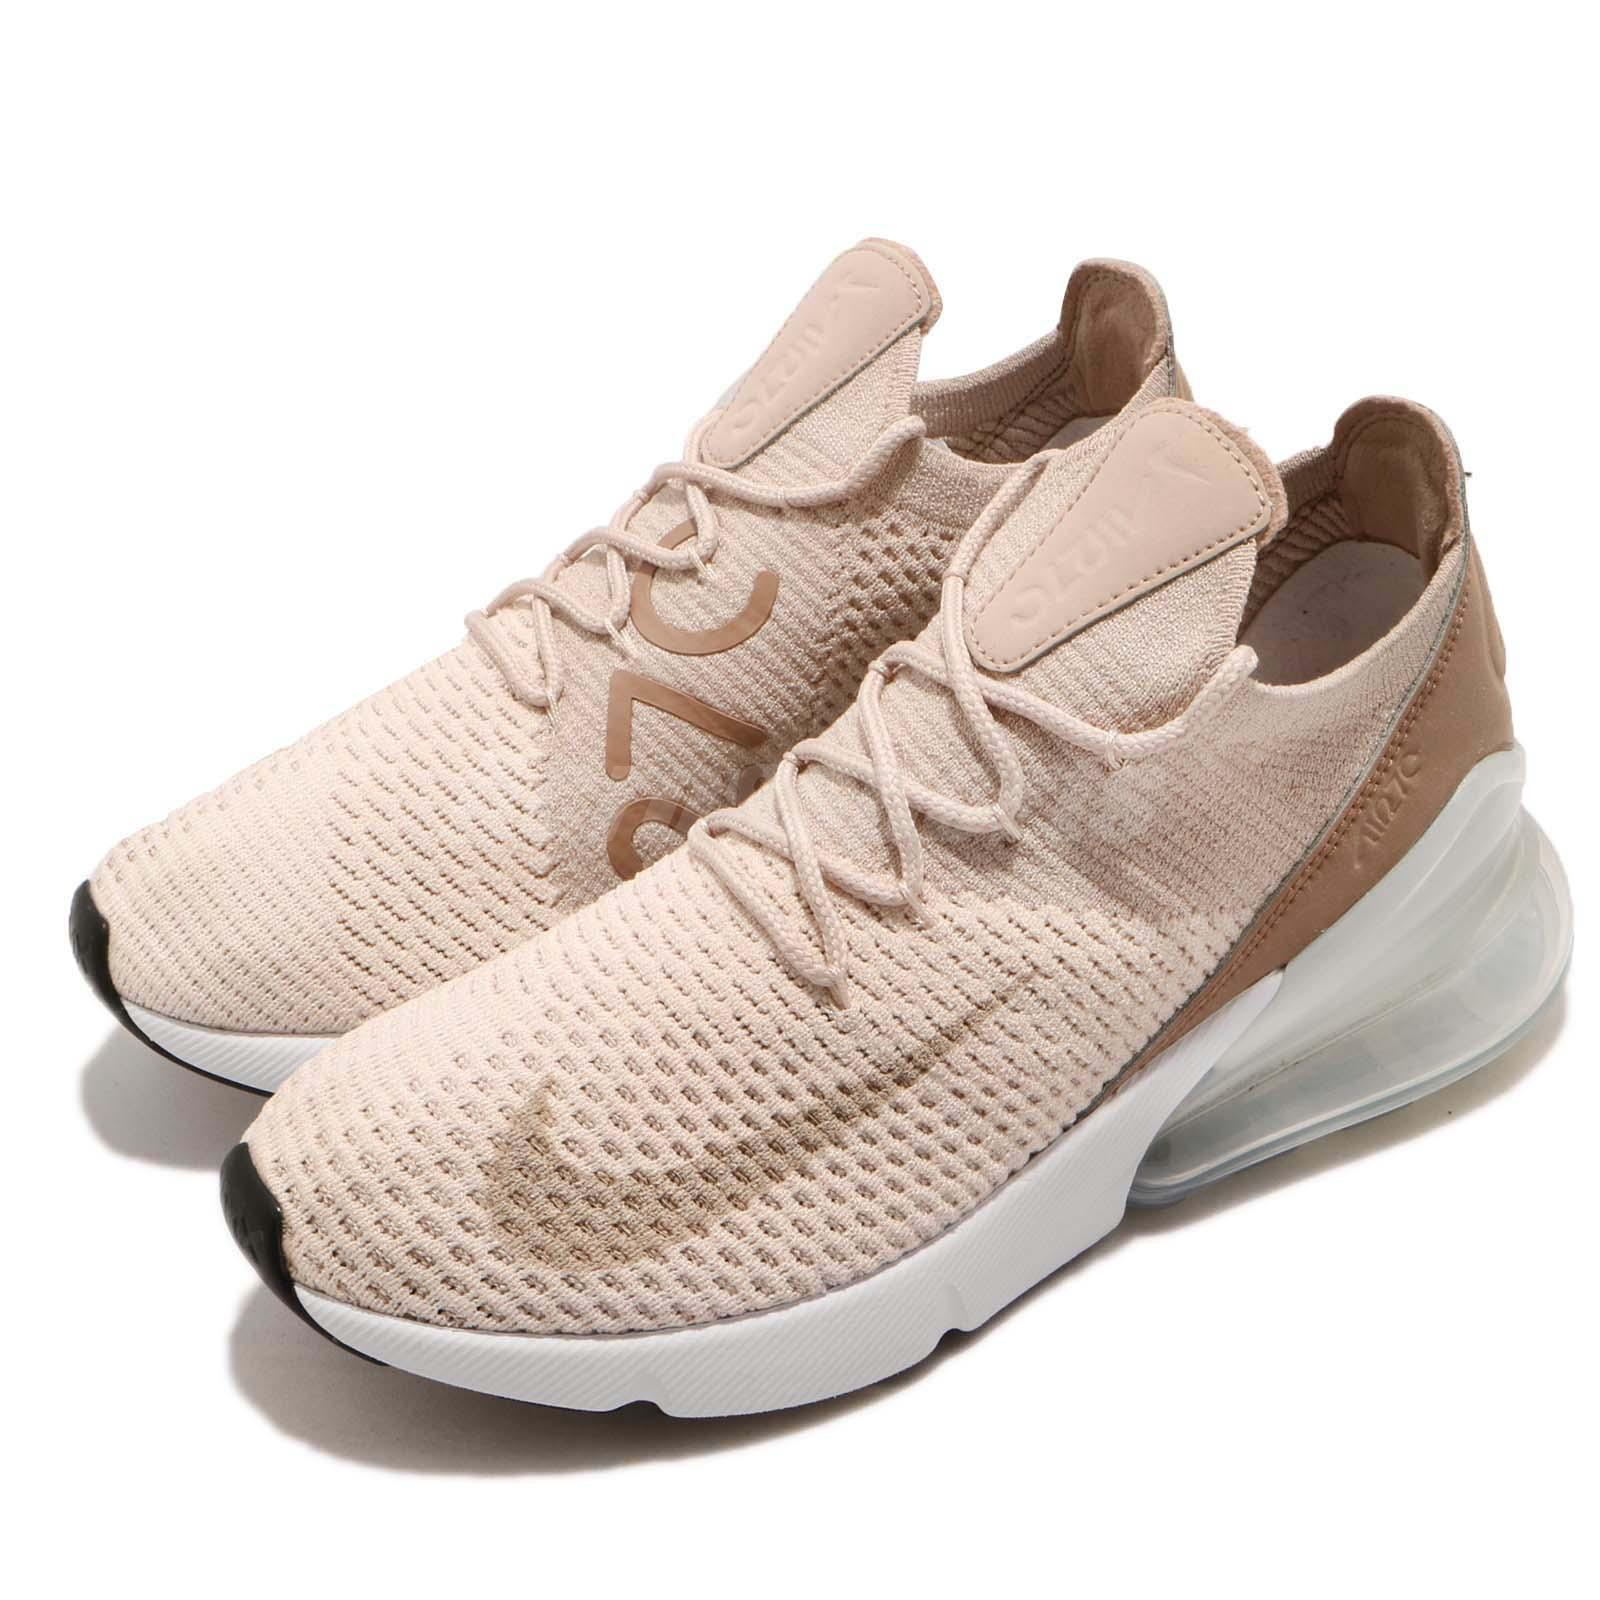 Nike Wmns Air Max 270 Flyknit Guava Ice Particle Beige Women Shoes ...